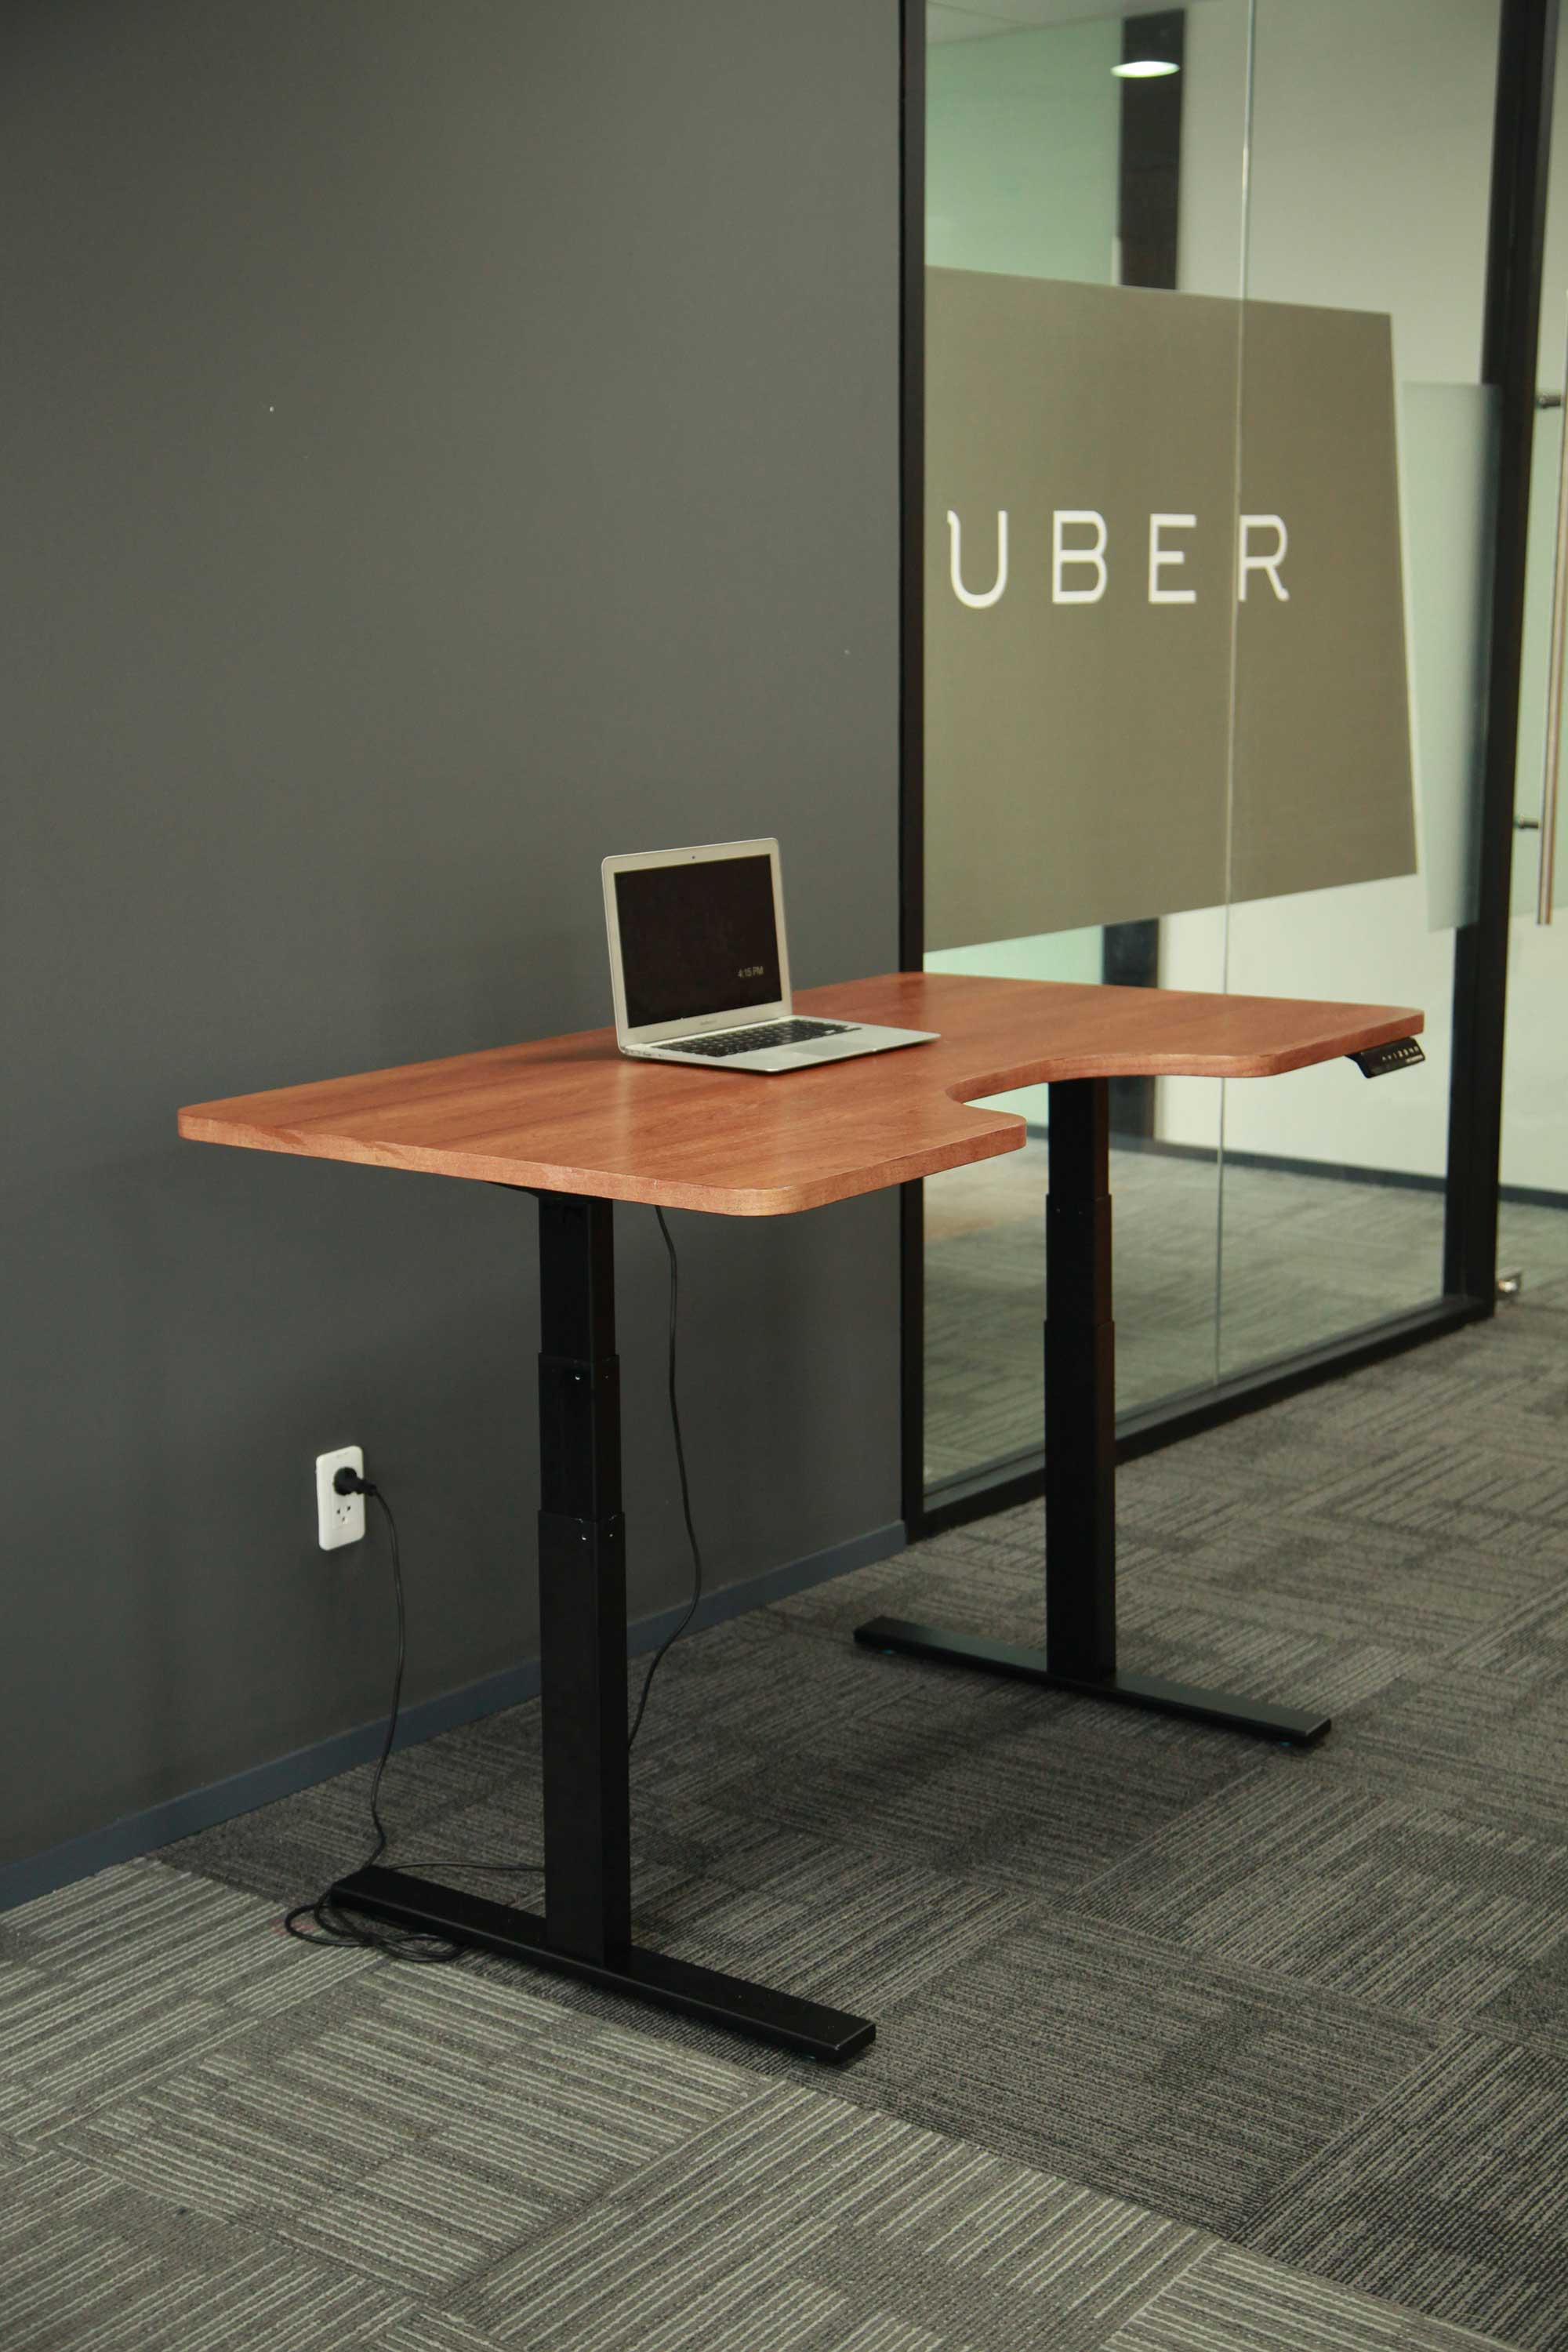 this desks come employees trumpeting for stirs could sit labrosse the are be shelling of stir bubble tech me connected employers smart s out dangers chair even articles gigaom aeron desk decades stand config as gave sitting